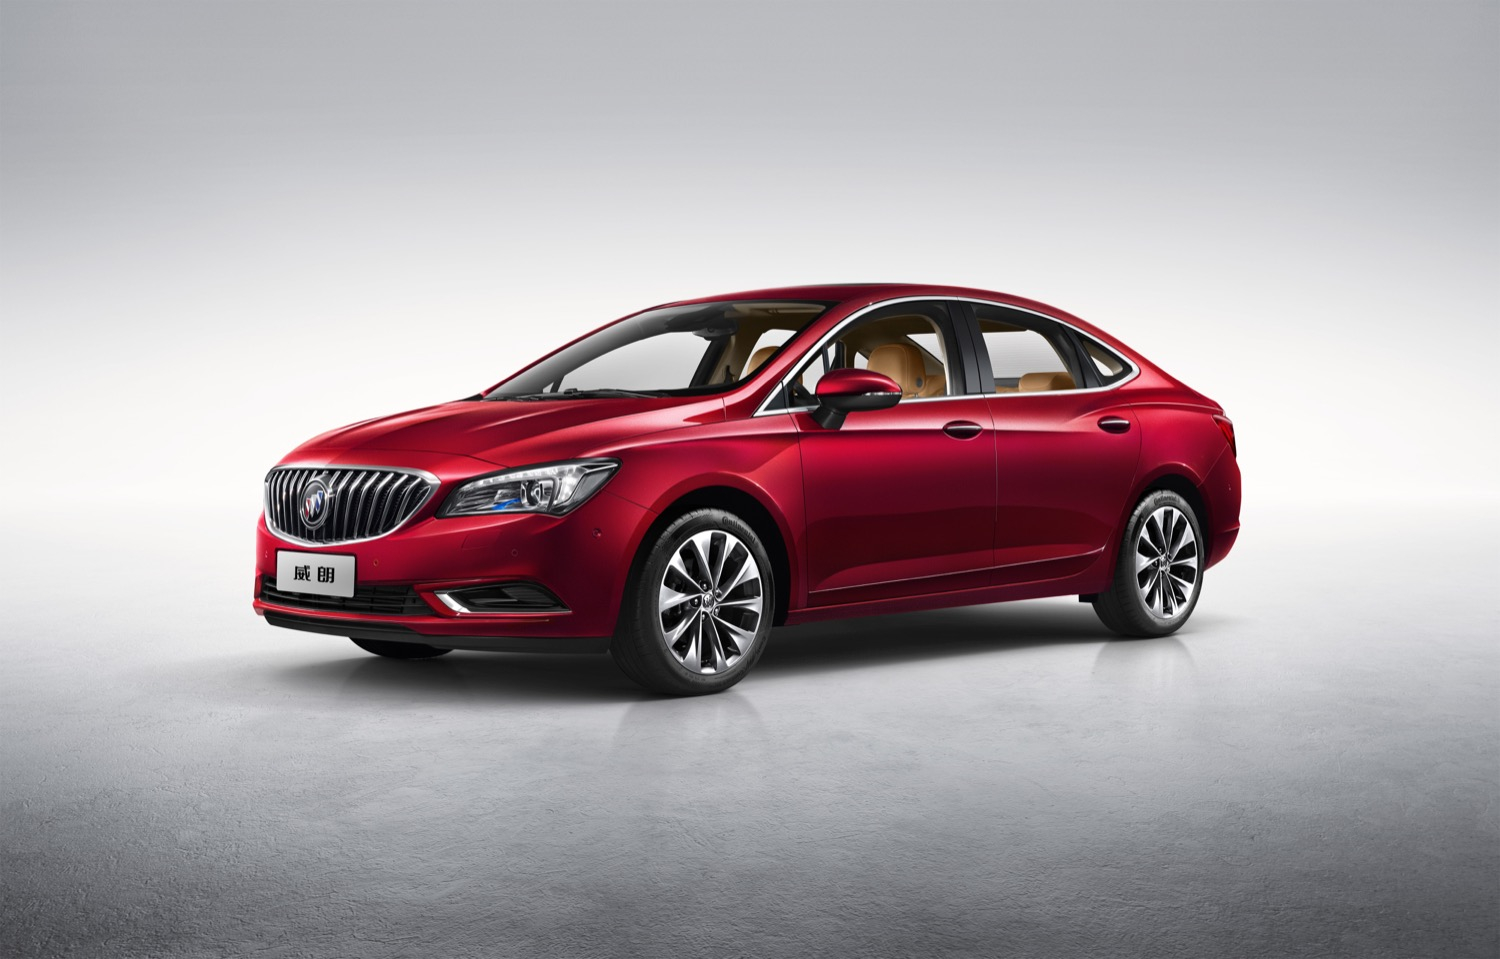 2016 Buick Verano D2Xx Info, Specs, Pictures | Gm Authority New 2022 Buick Verano Engine, Problems, Accessories